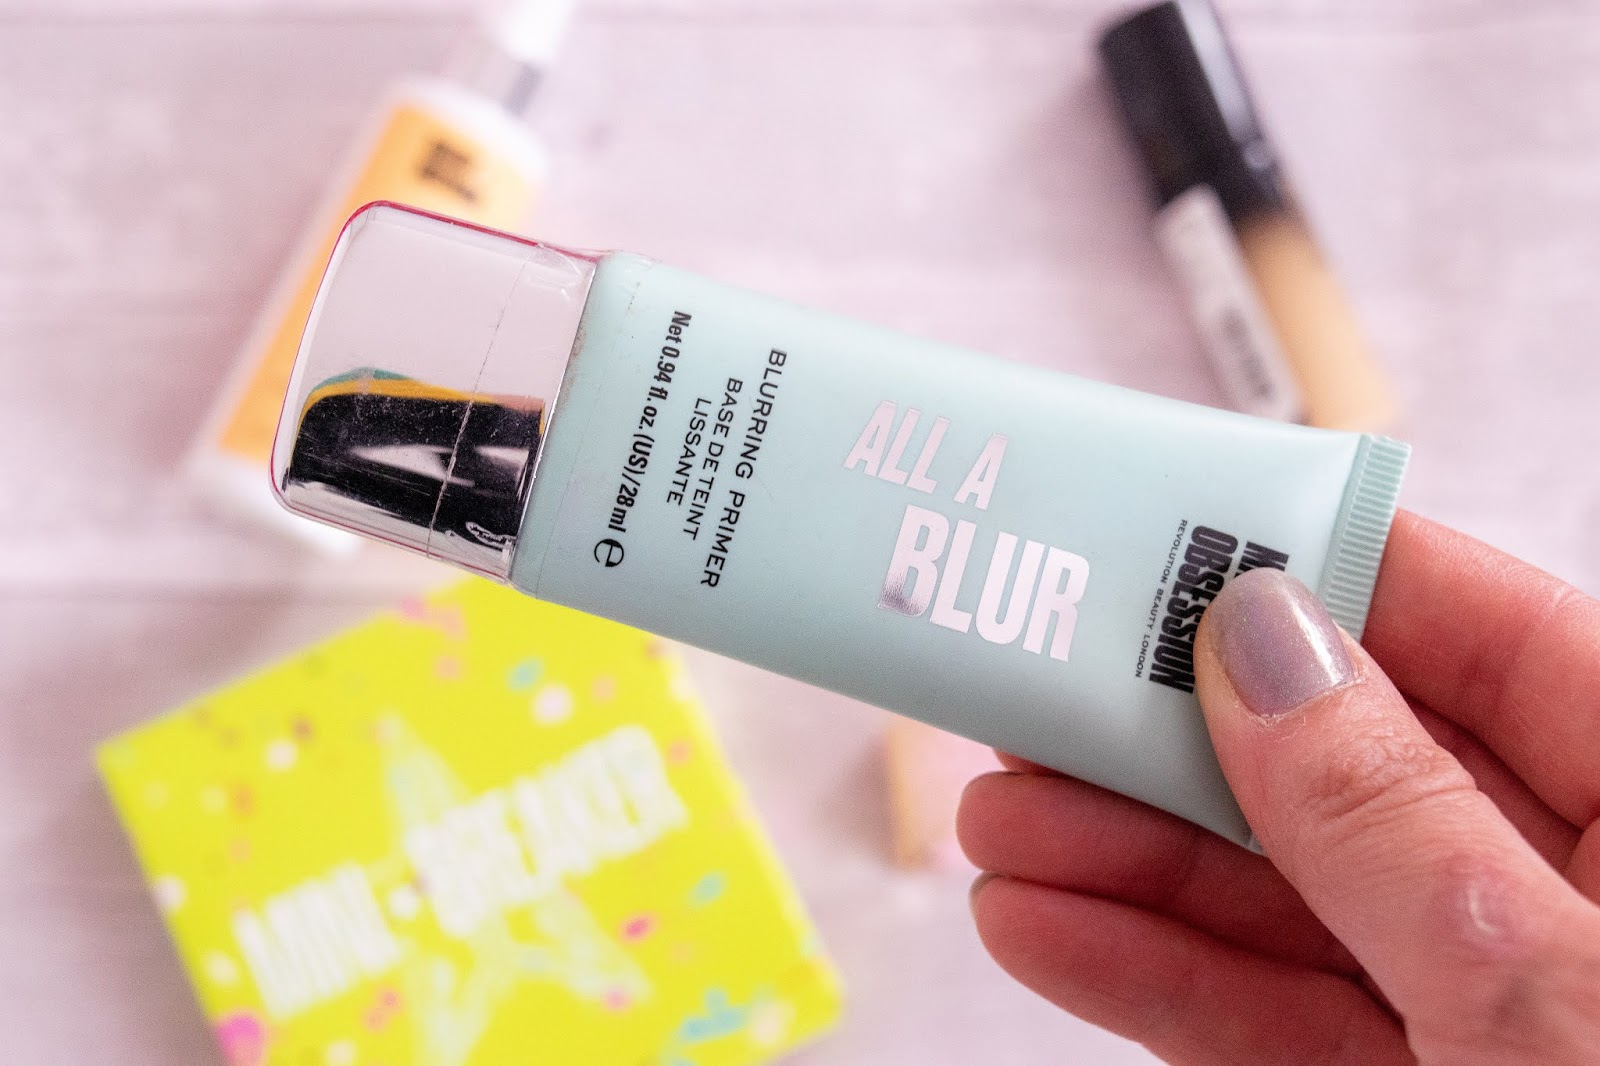 A close up of the Makeup Obsession Blur Primer. The tube is mint green with a silver cap.